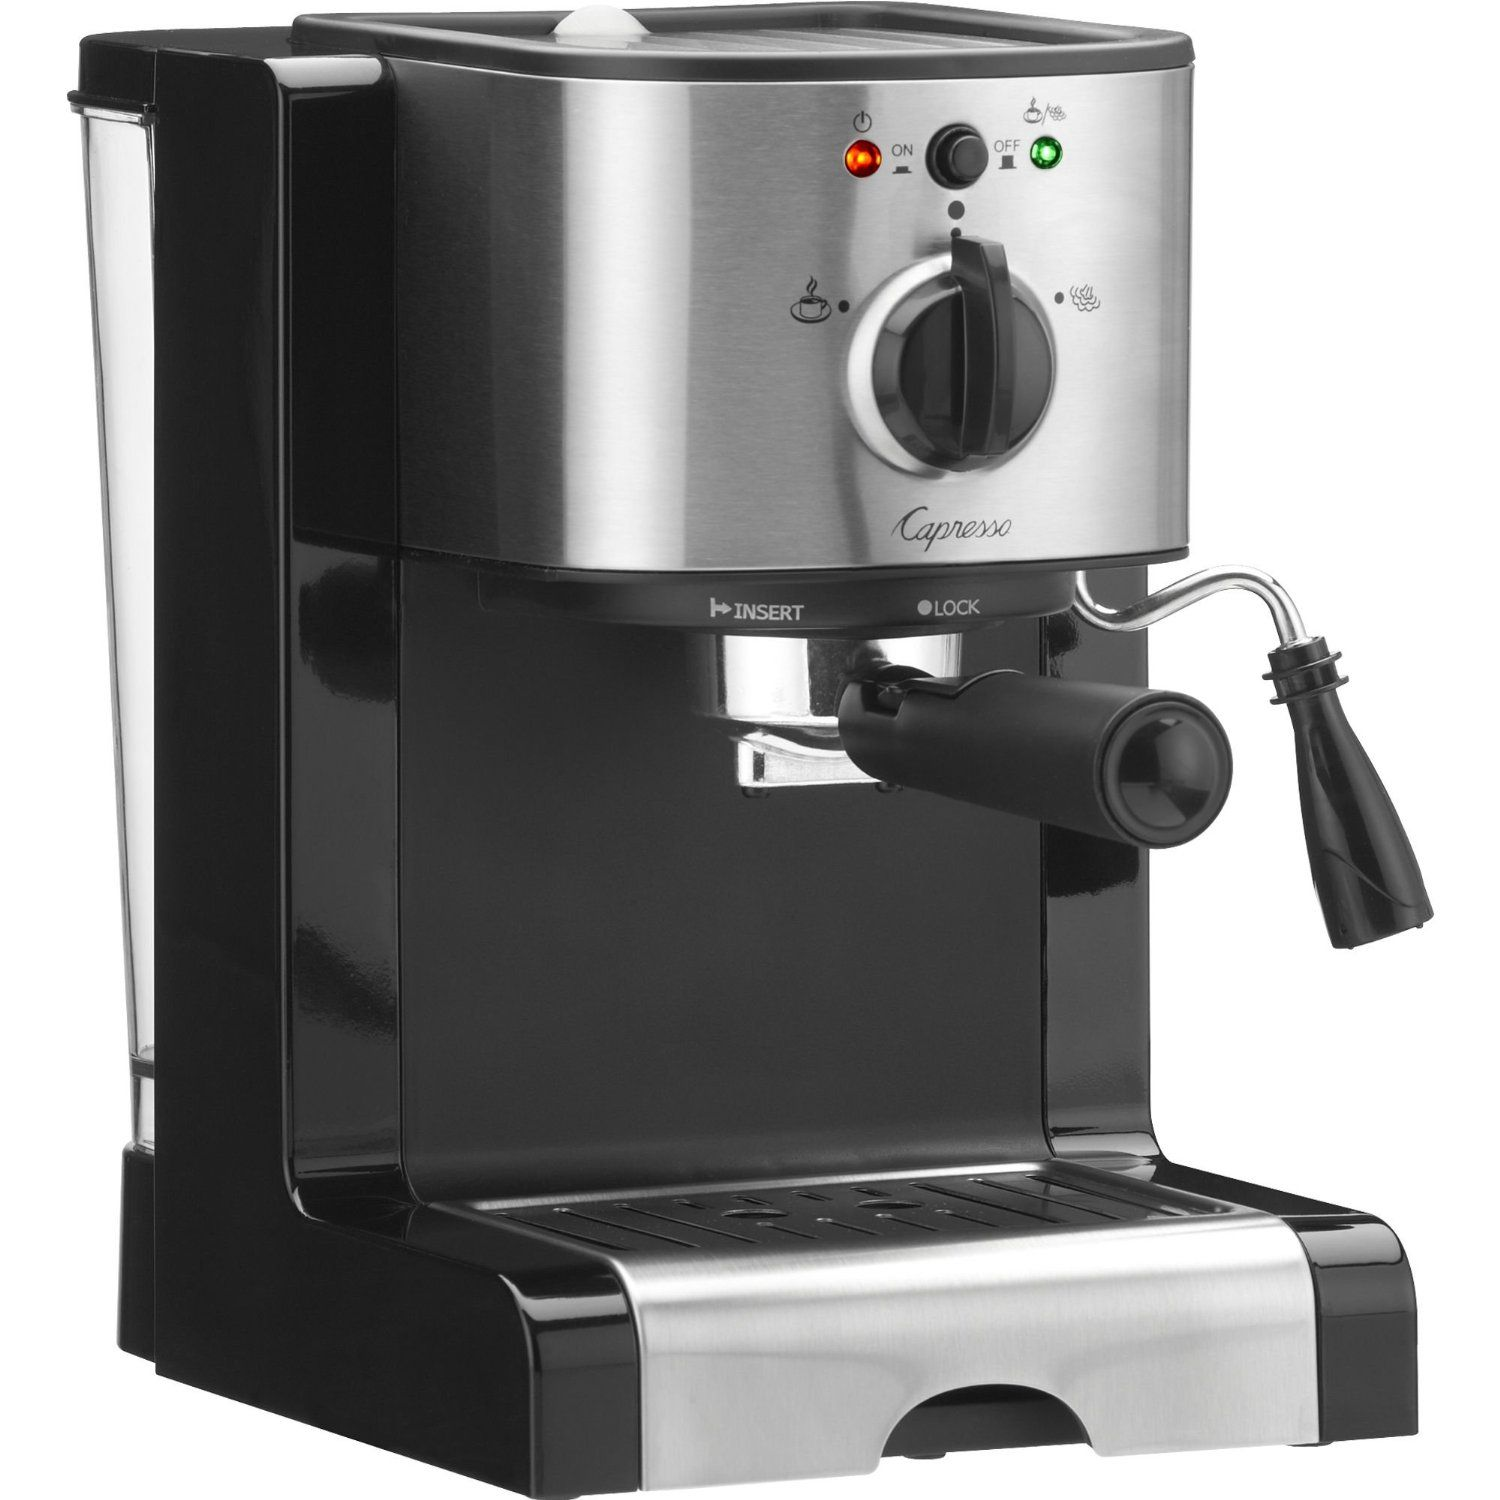 EC100 Coffee Maker in 2019 Espresso machine reviews